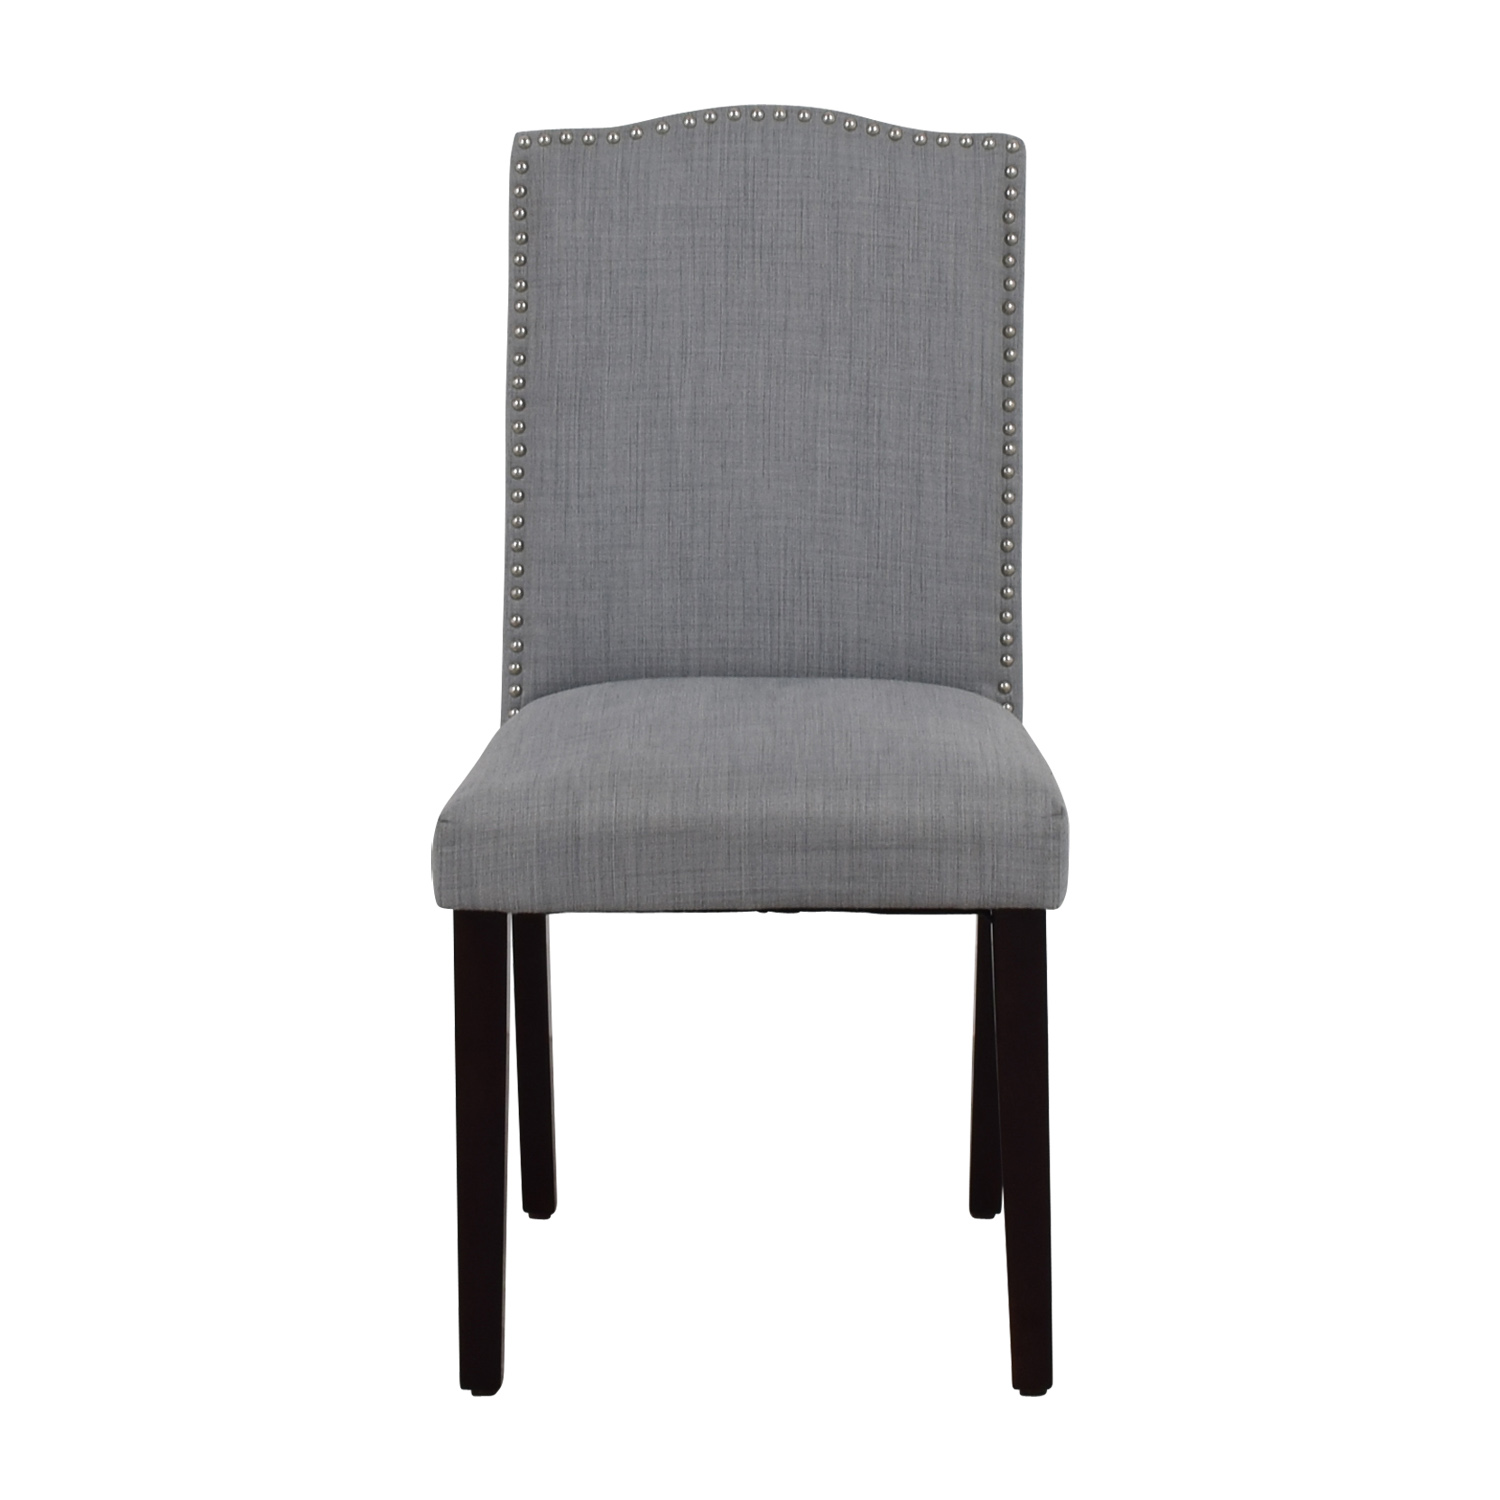 Target Threshold Brookline Grey Nailhead Dining Chair Target Threshold